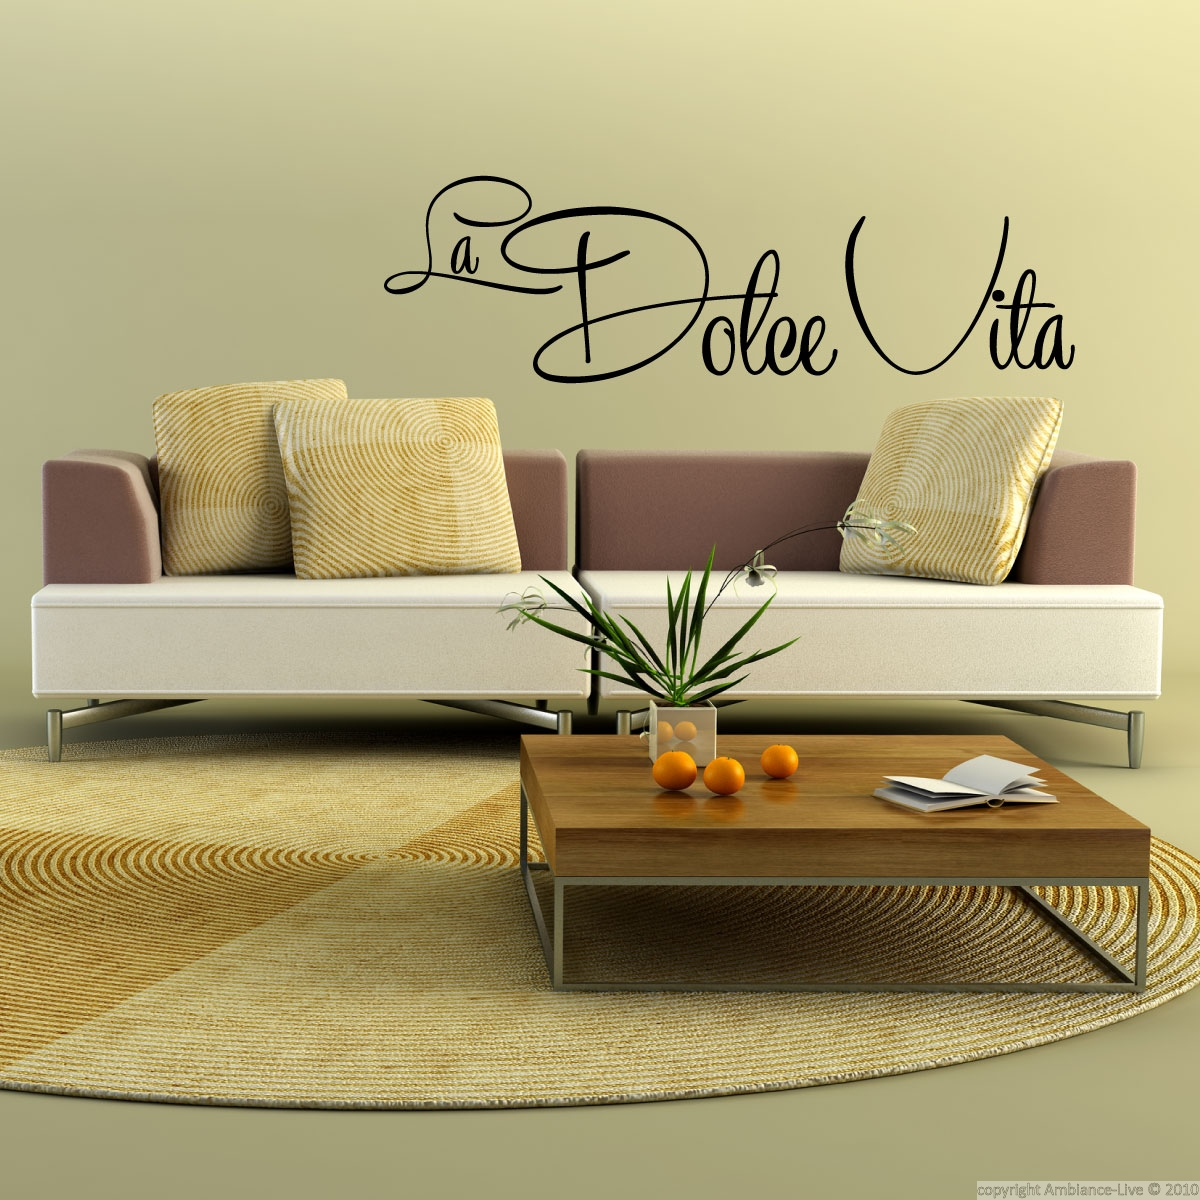 La Dolce Vita Wall Decal Quotes Pinterest # Muebles Dolce Vita